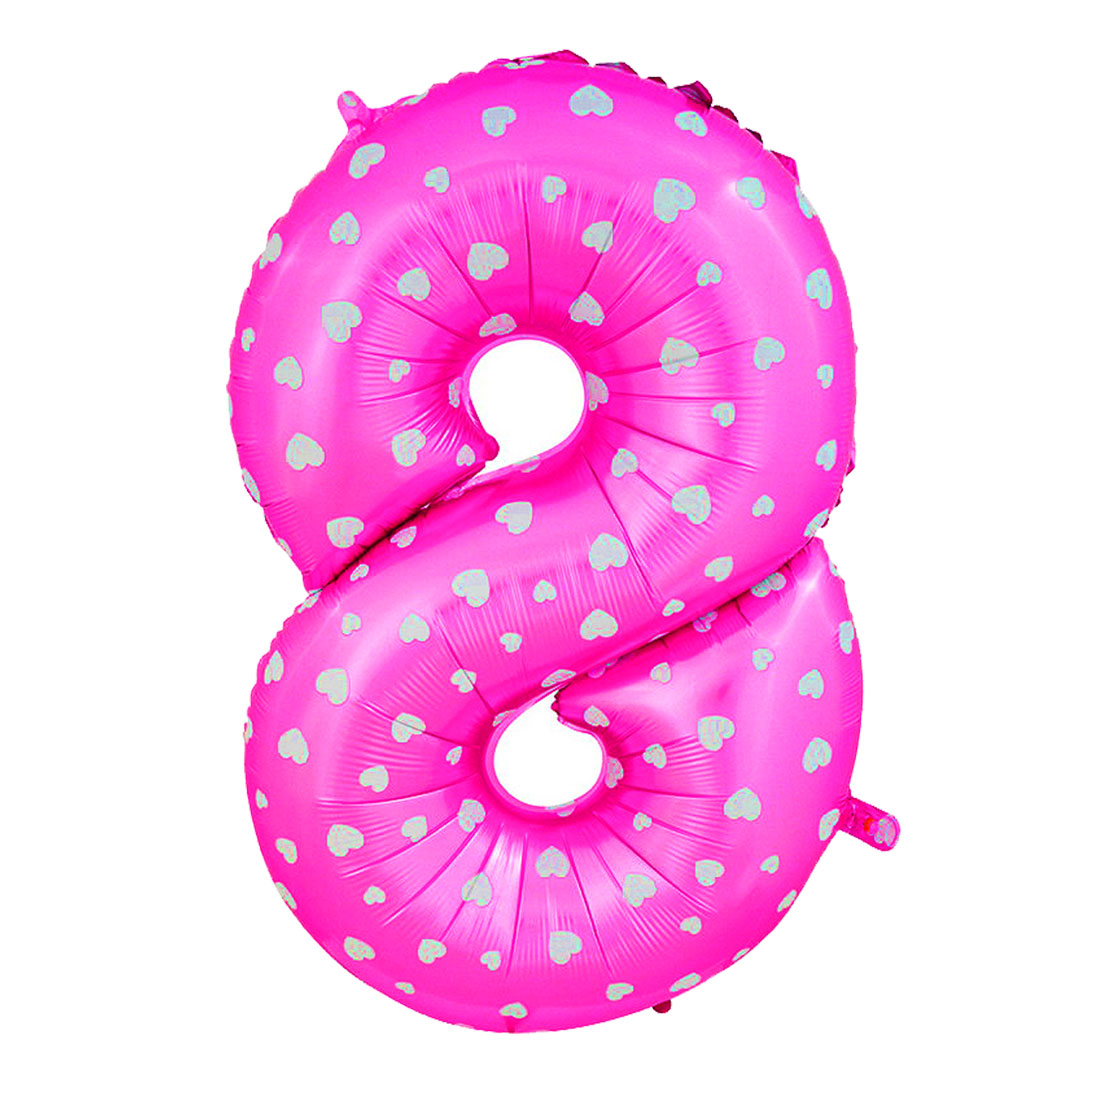 uxcell 16 fuchsia foil number 8 shape balloon helium party birthday wedding anniversary festival decor